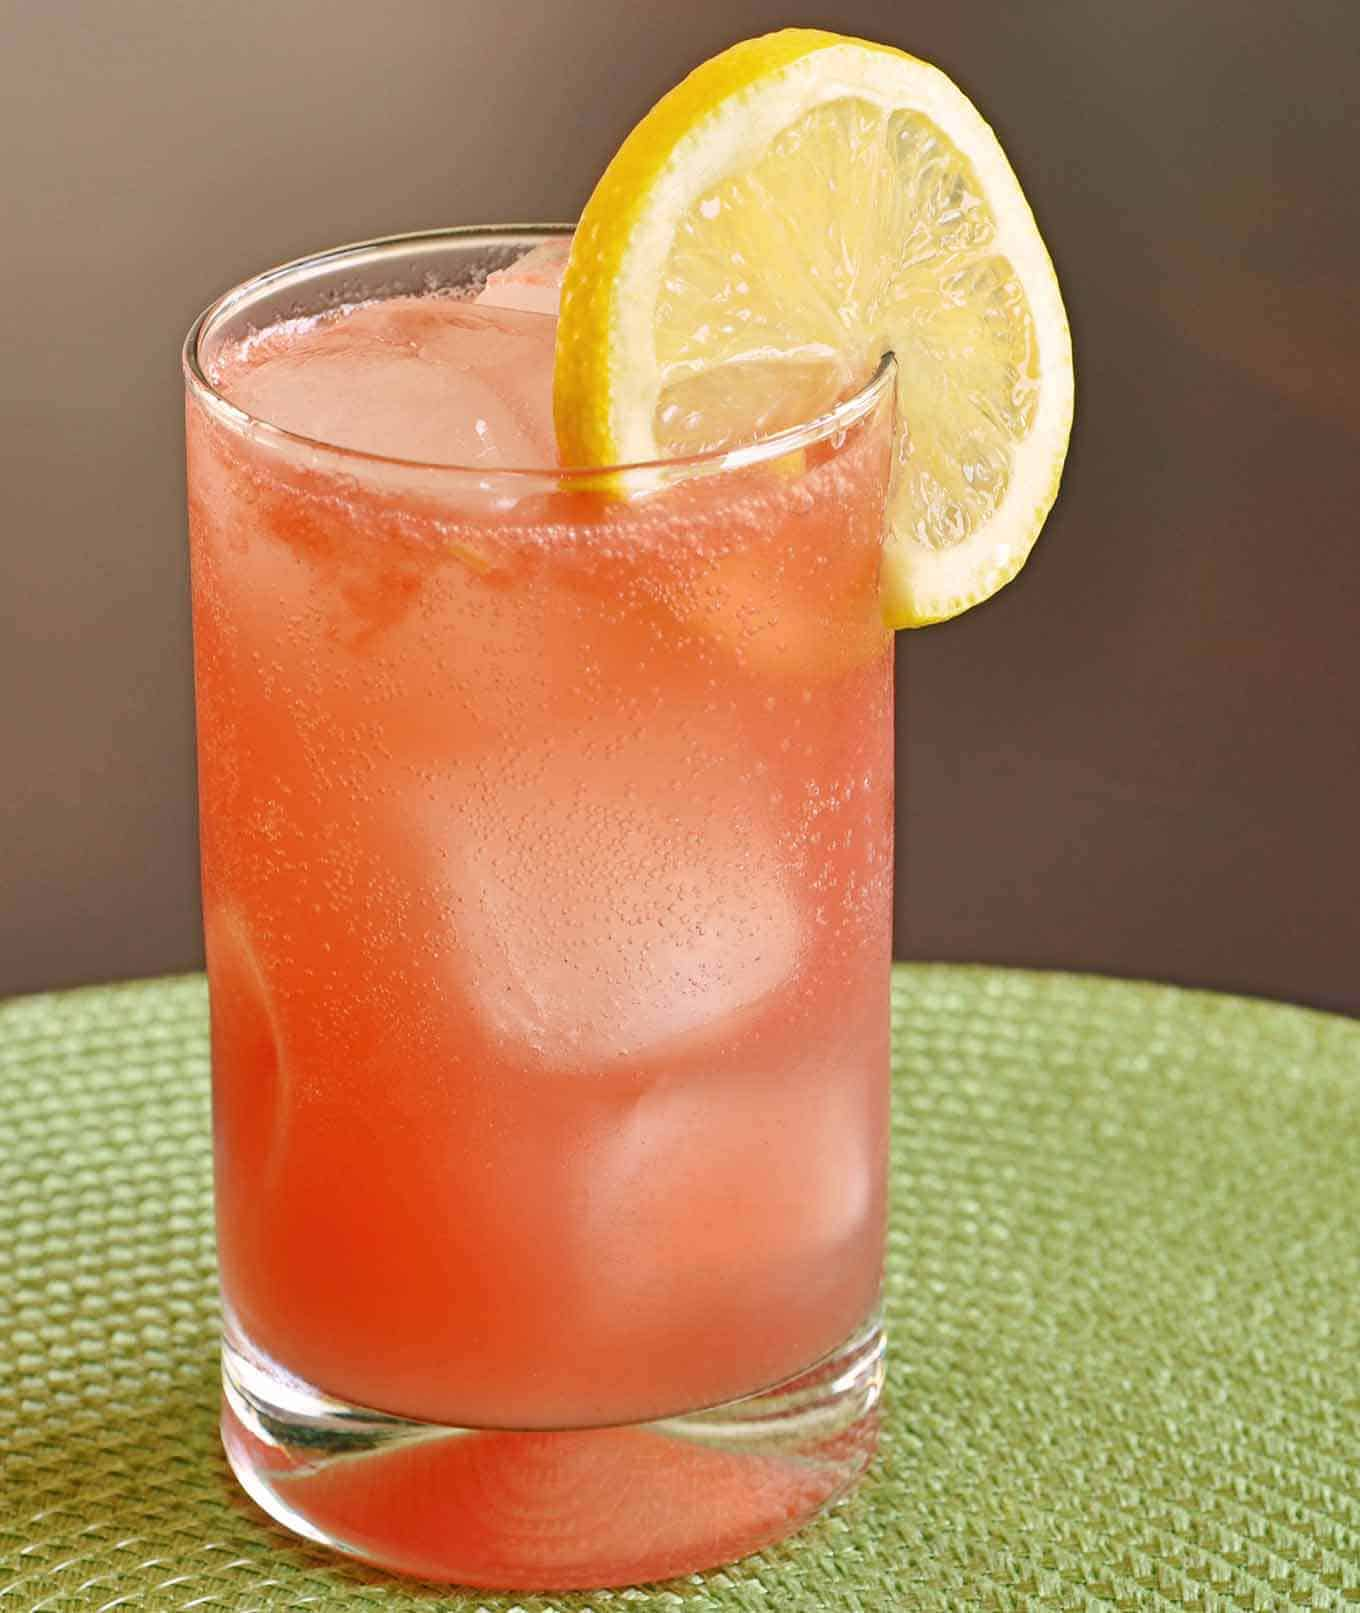 Collins glass filled with muddled fresh watermelon, vodka limoncello, lemon juice, and soda garnished with a lemon wheel.